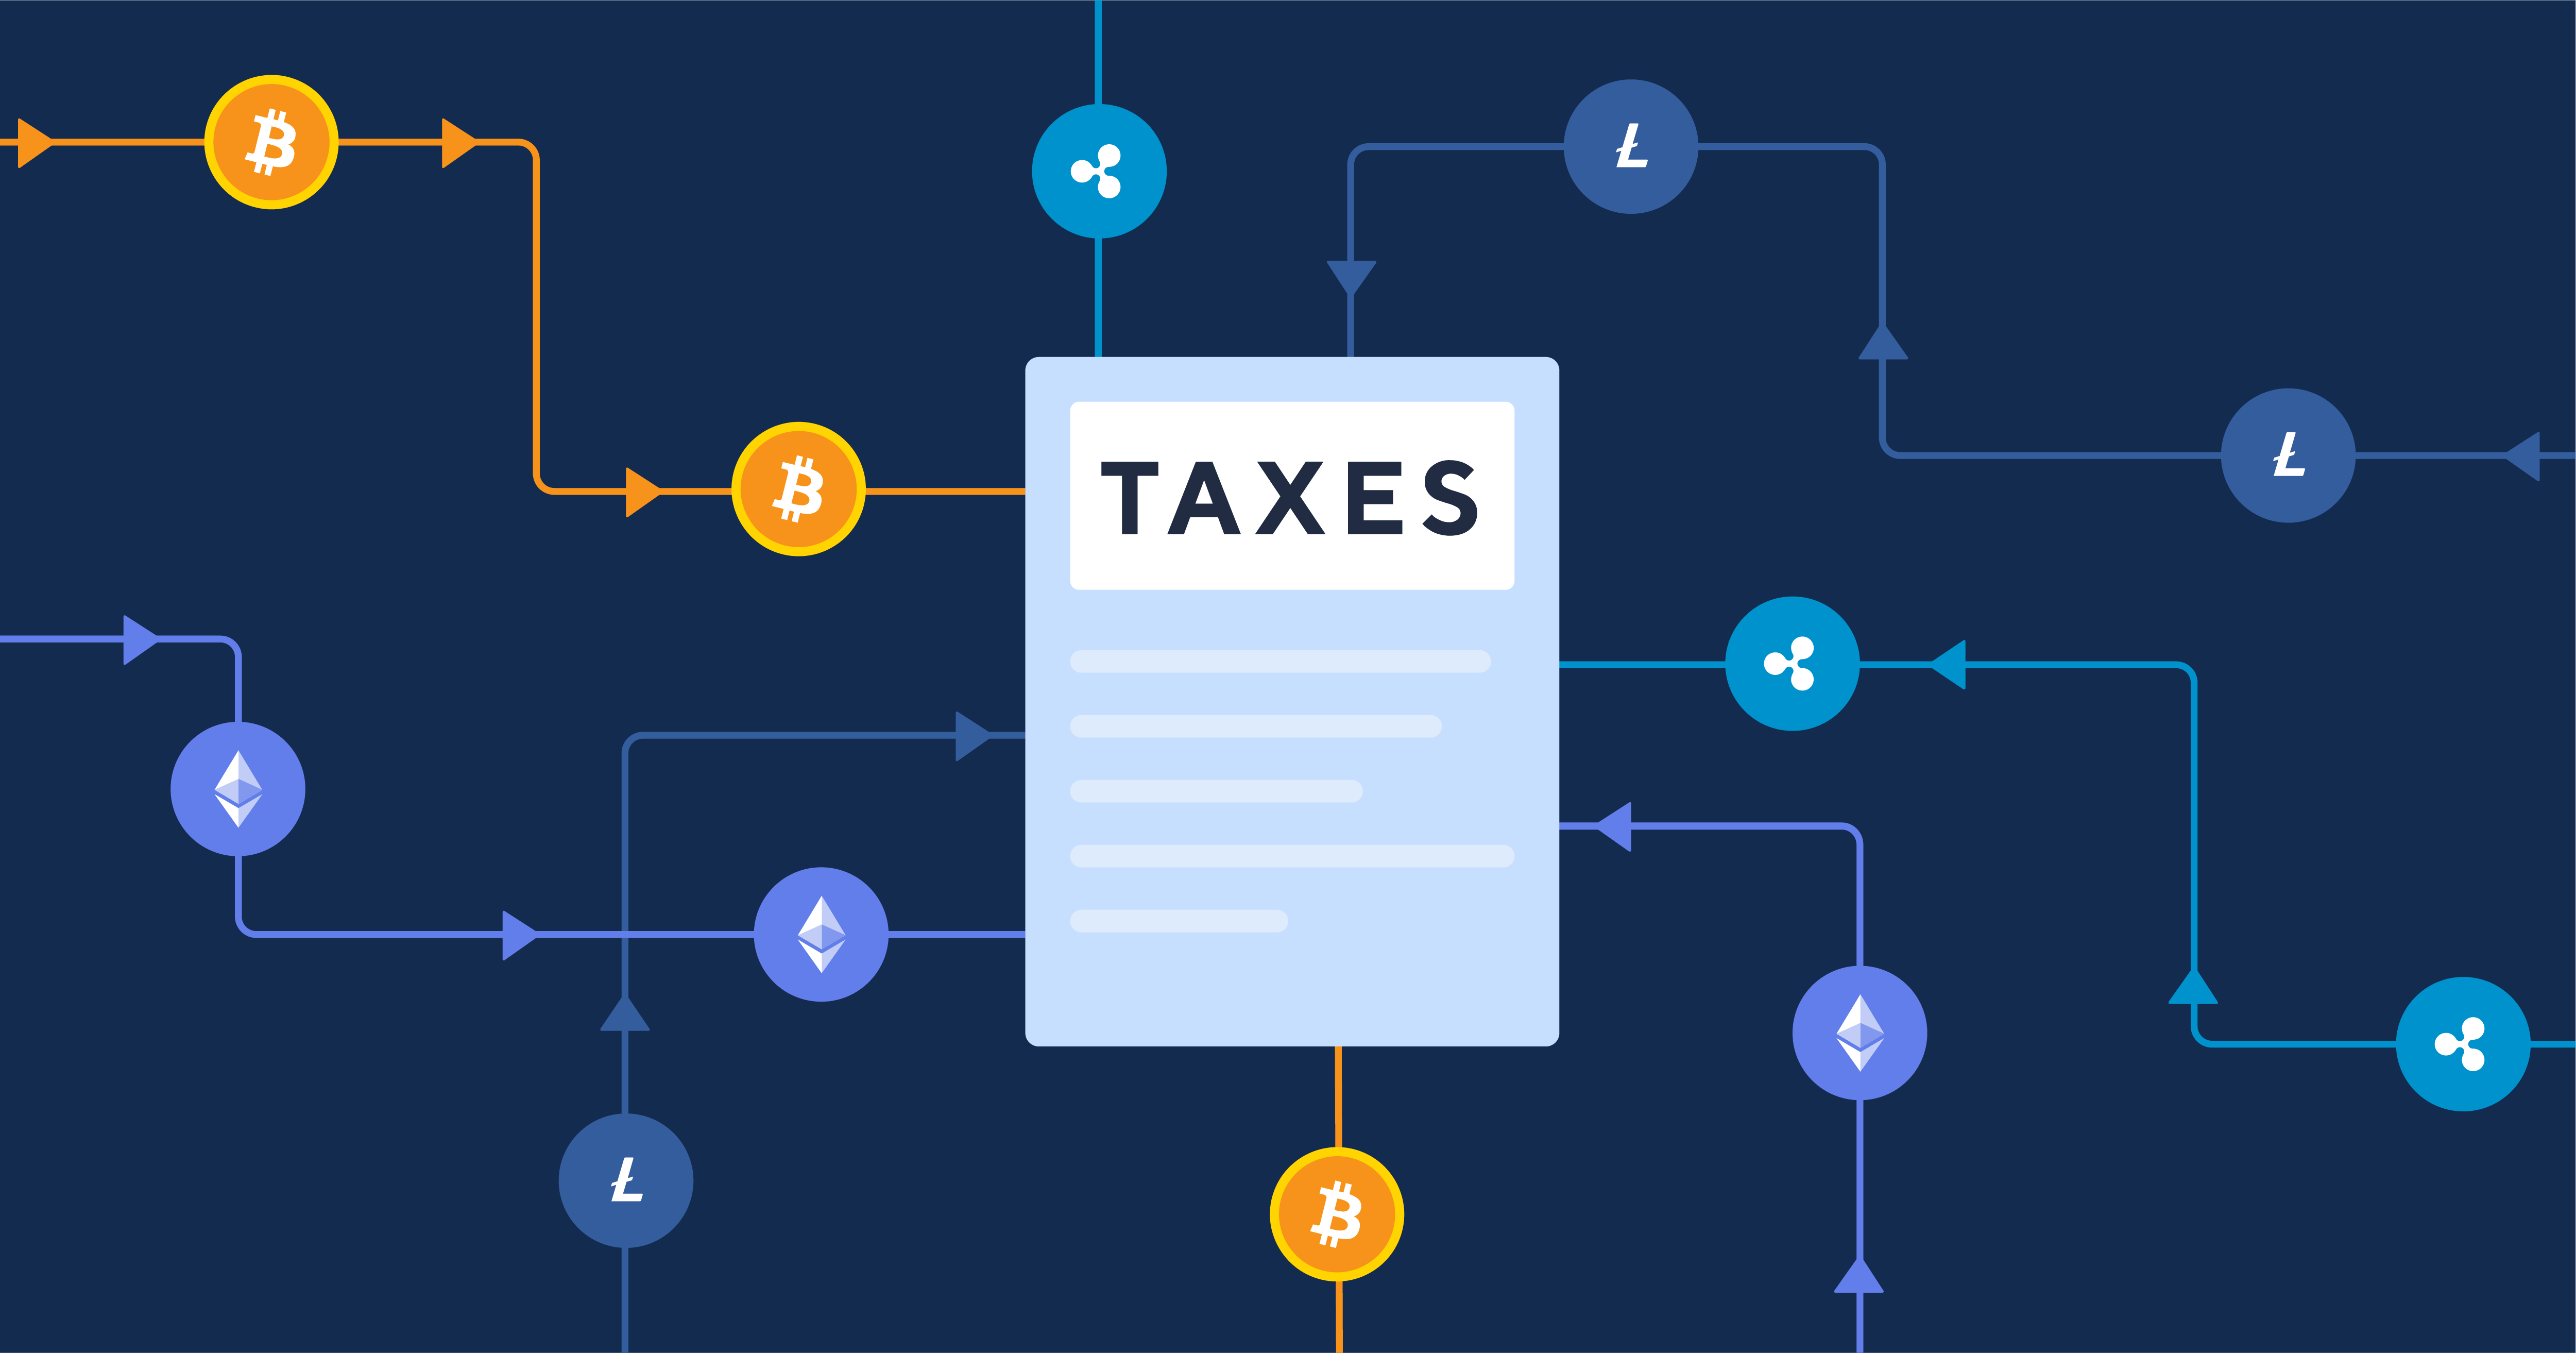 How to Handle Cryptocurrency Mining and Staking on Your Taxes